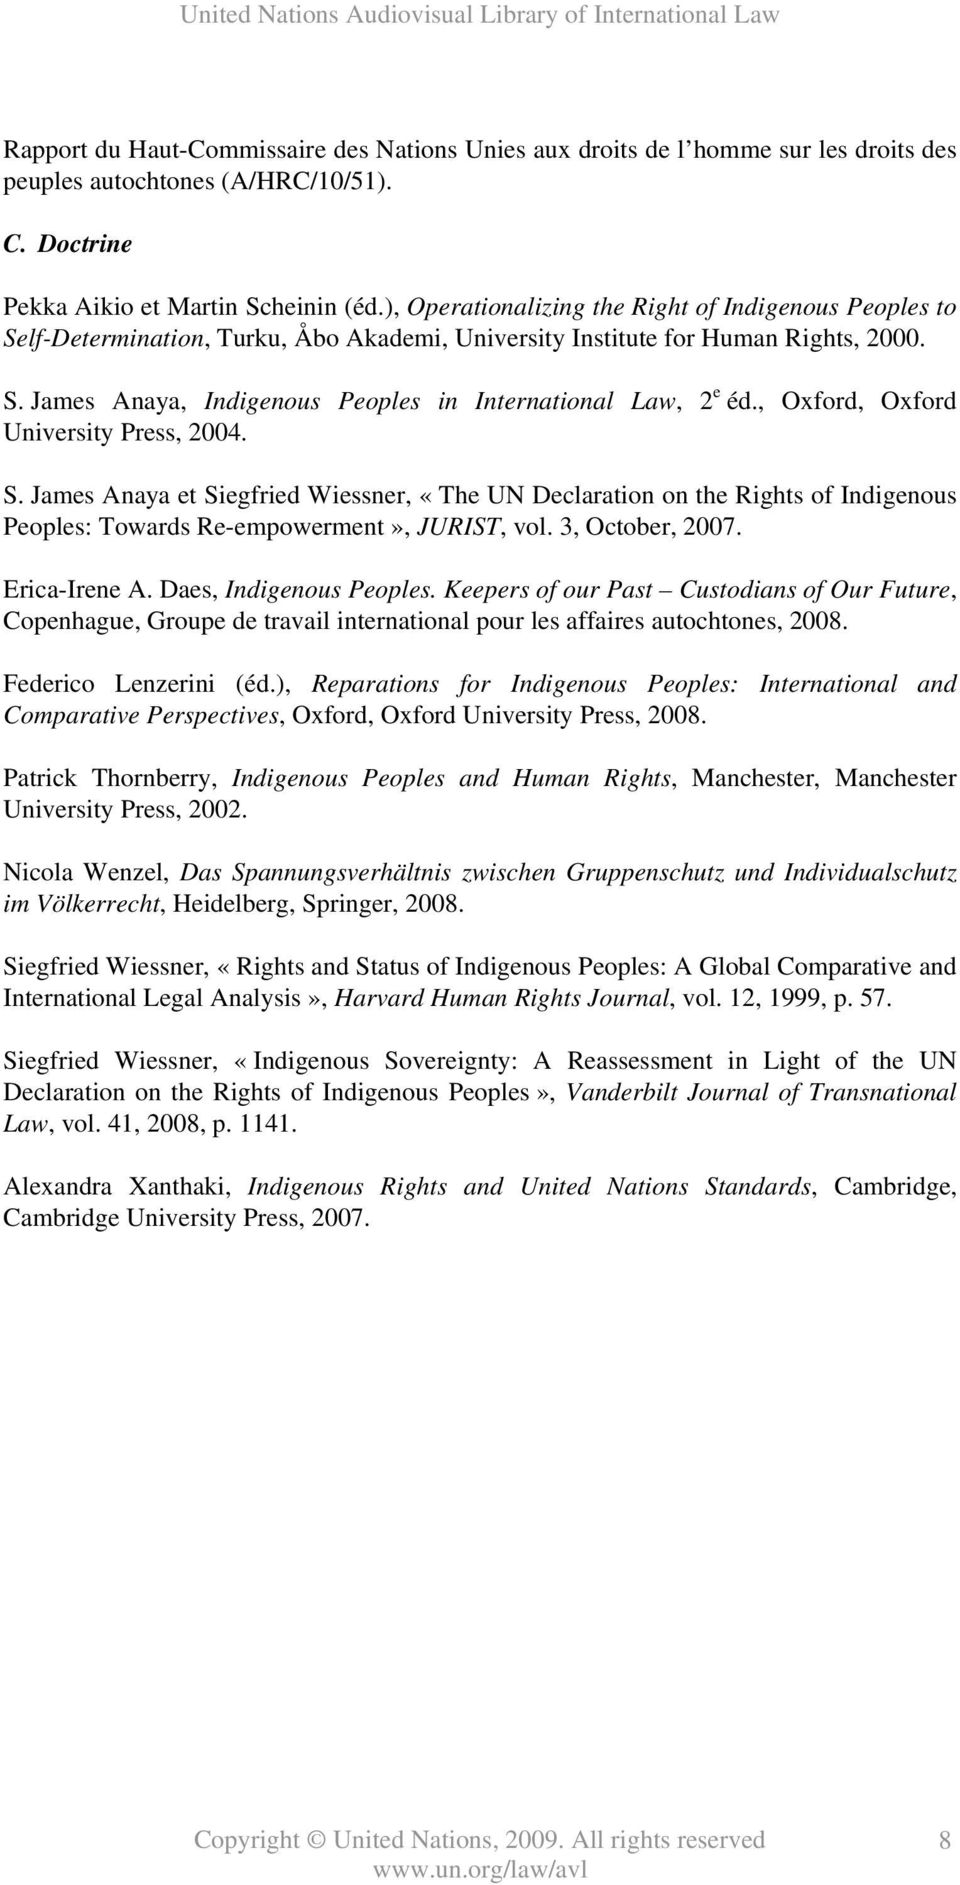 , Oxford, Oxford University Press, 2004. S. James Anaya et Siegfried Wiessner, «The UN Declaration on the Rights of Indigenous Peoples: Towards Re-empowerment», JURIST, vol. 3, October, 2007.